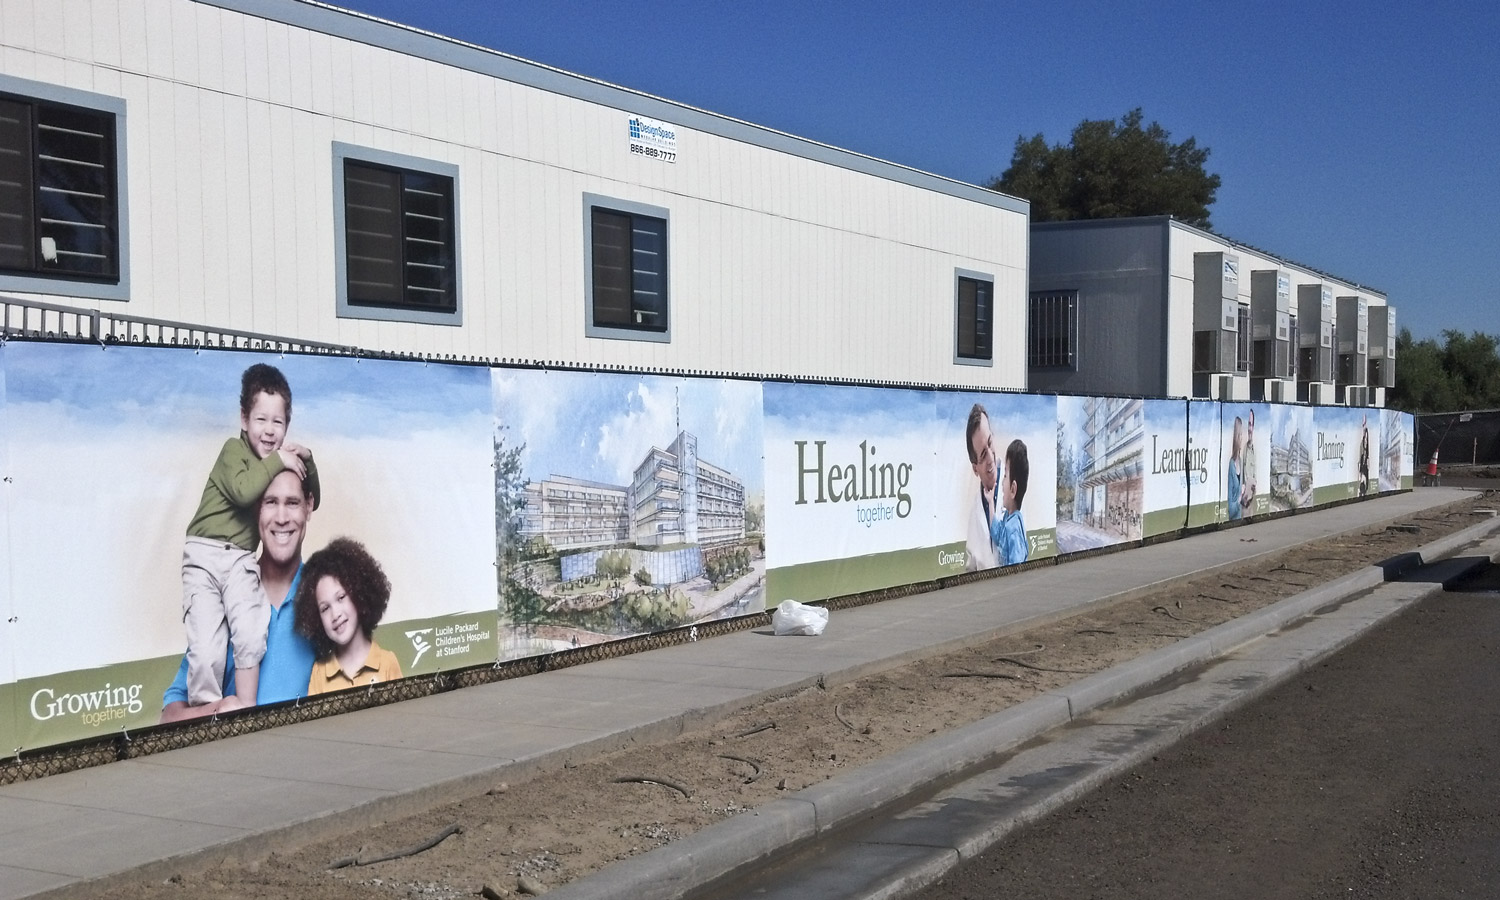 Construction Privacy Banners  - JP Digital Imaging